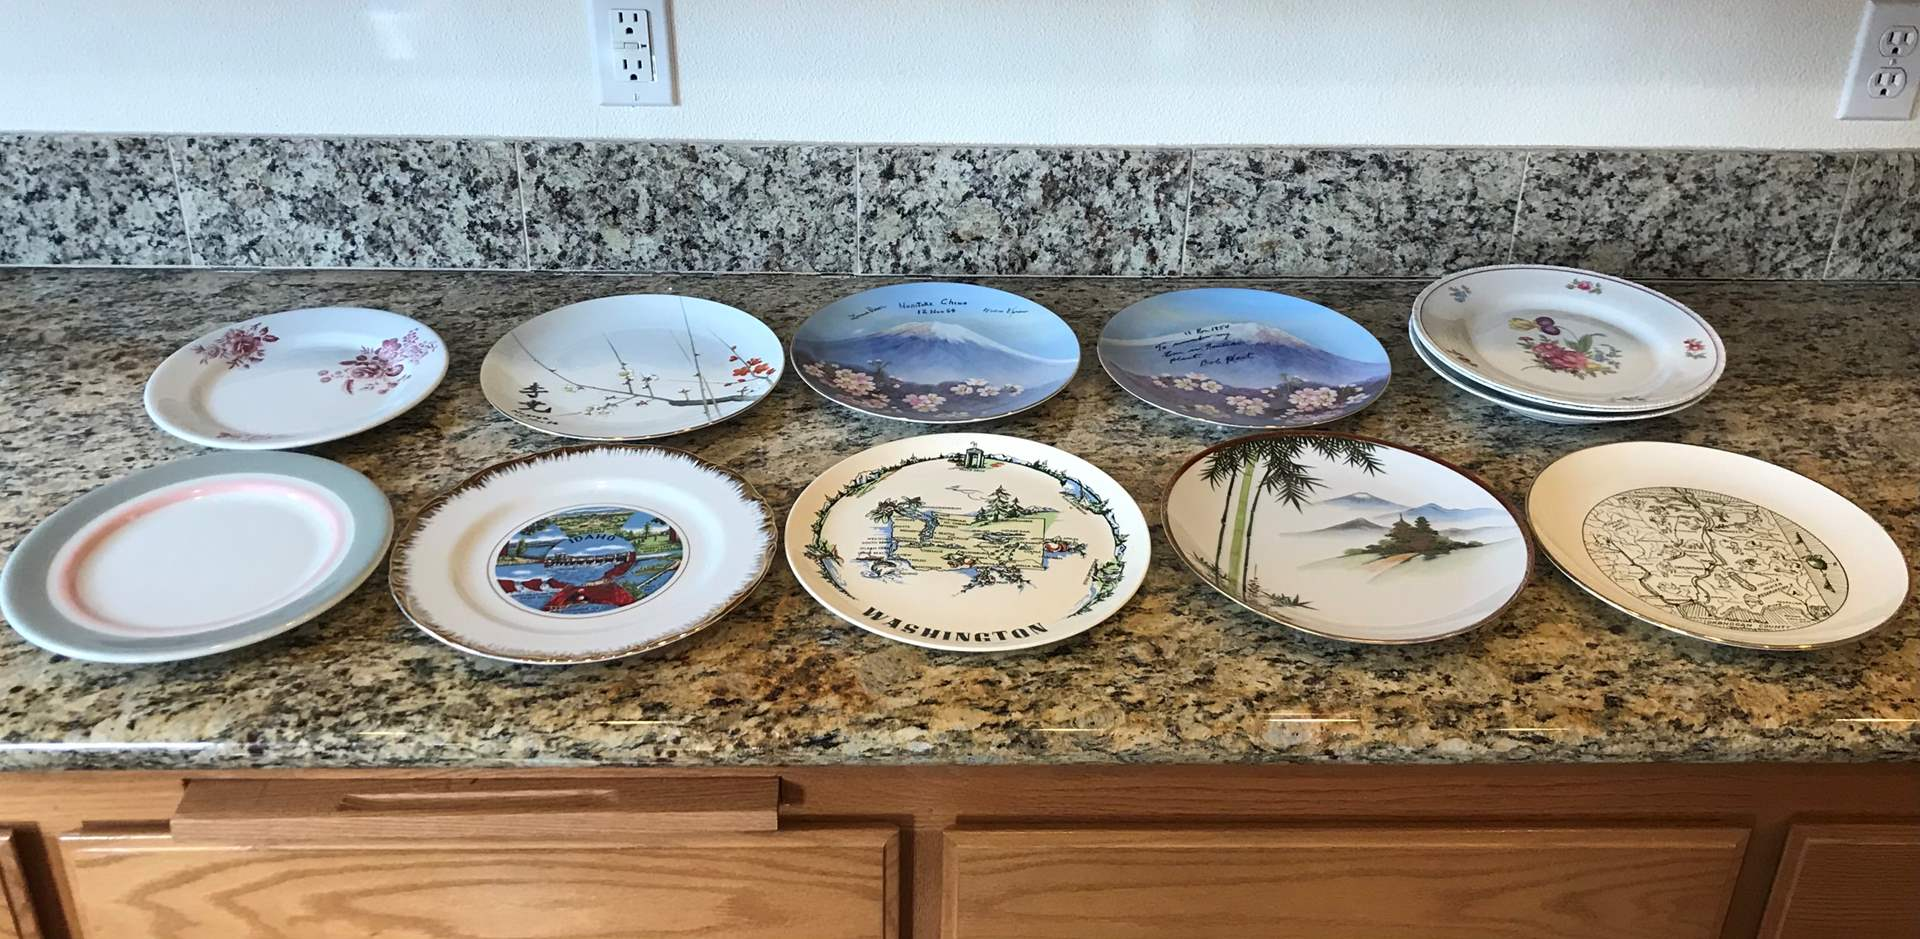 Lot # 84 - Decorative Plates & Misc. Other Plates (main image)